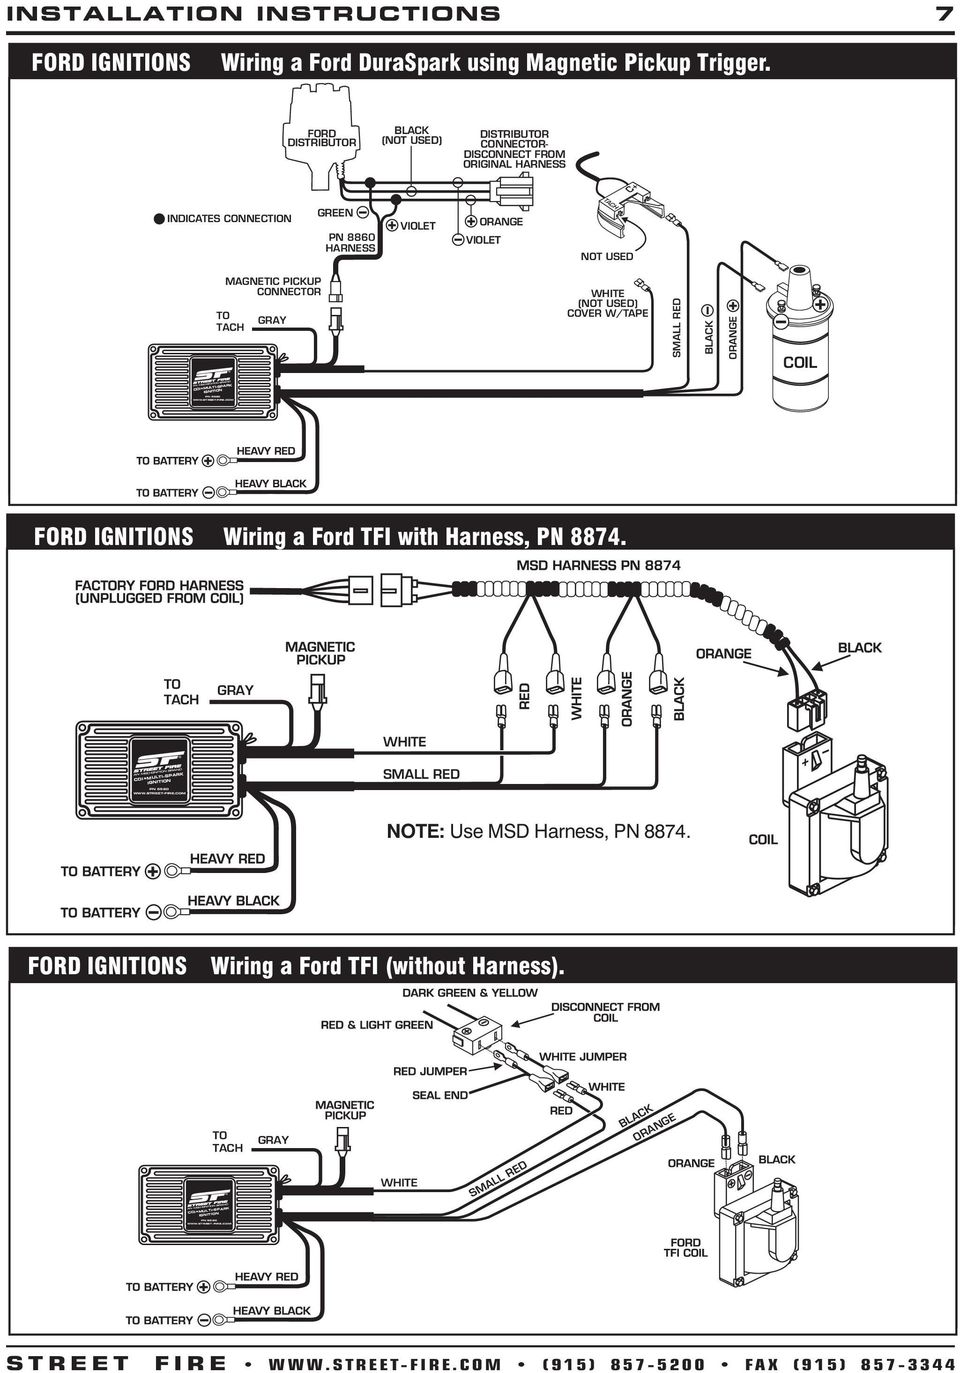 Duraspark Wiring Harness Ford To Msd Ignition Diagram Diagrams 5520 System